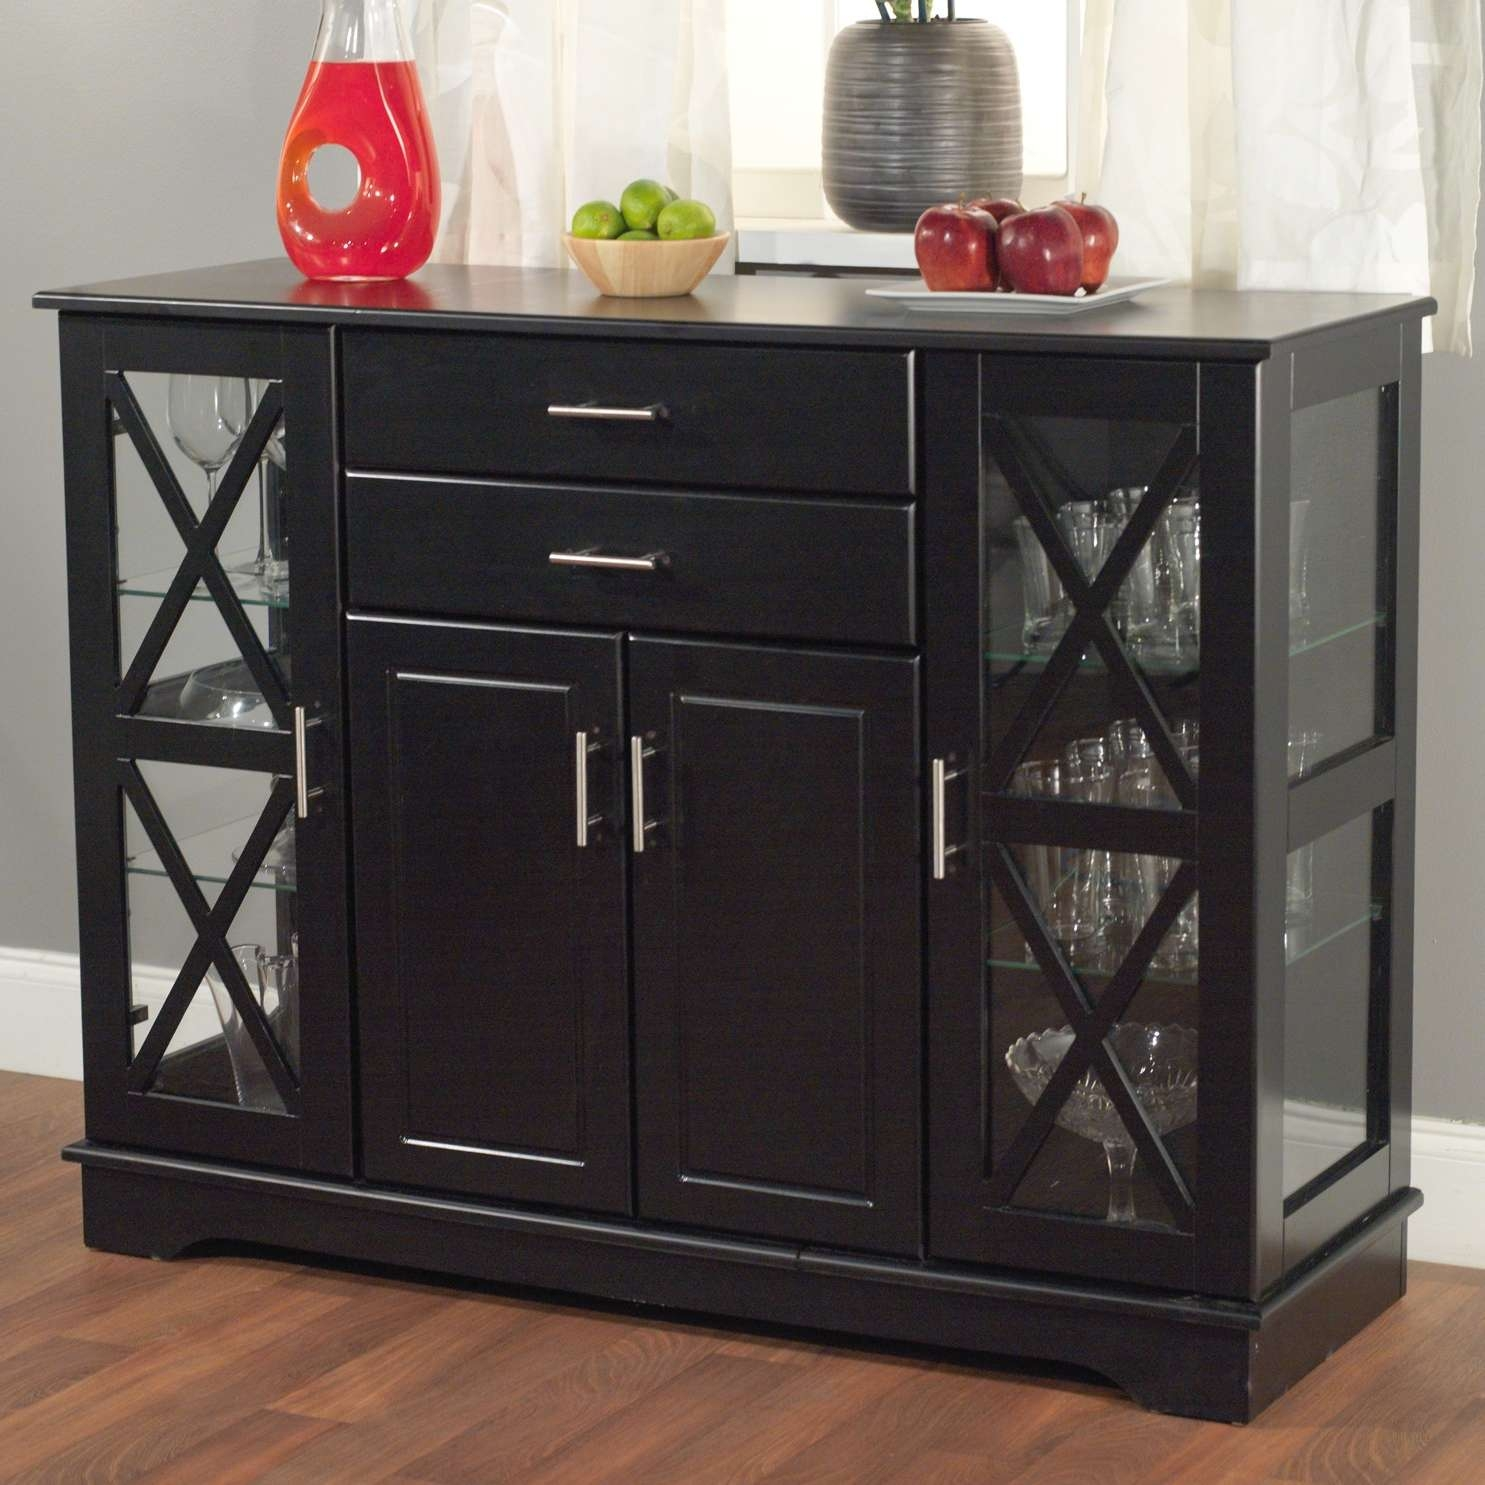 Sideboards With Glass Doors Gallery – Doors Design Ideas Intended For Glass Sideboards (View 9 of 20)